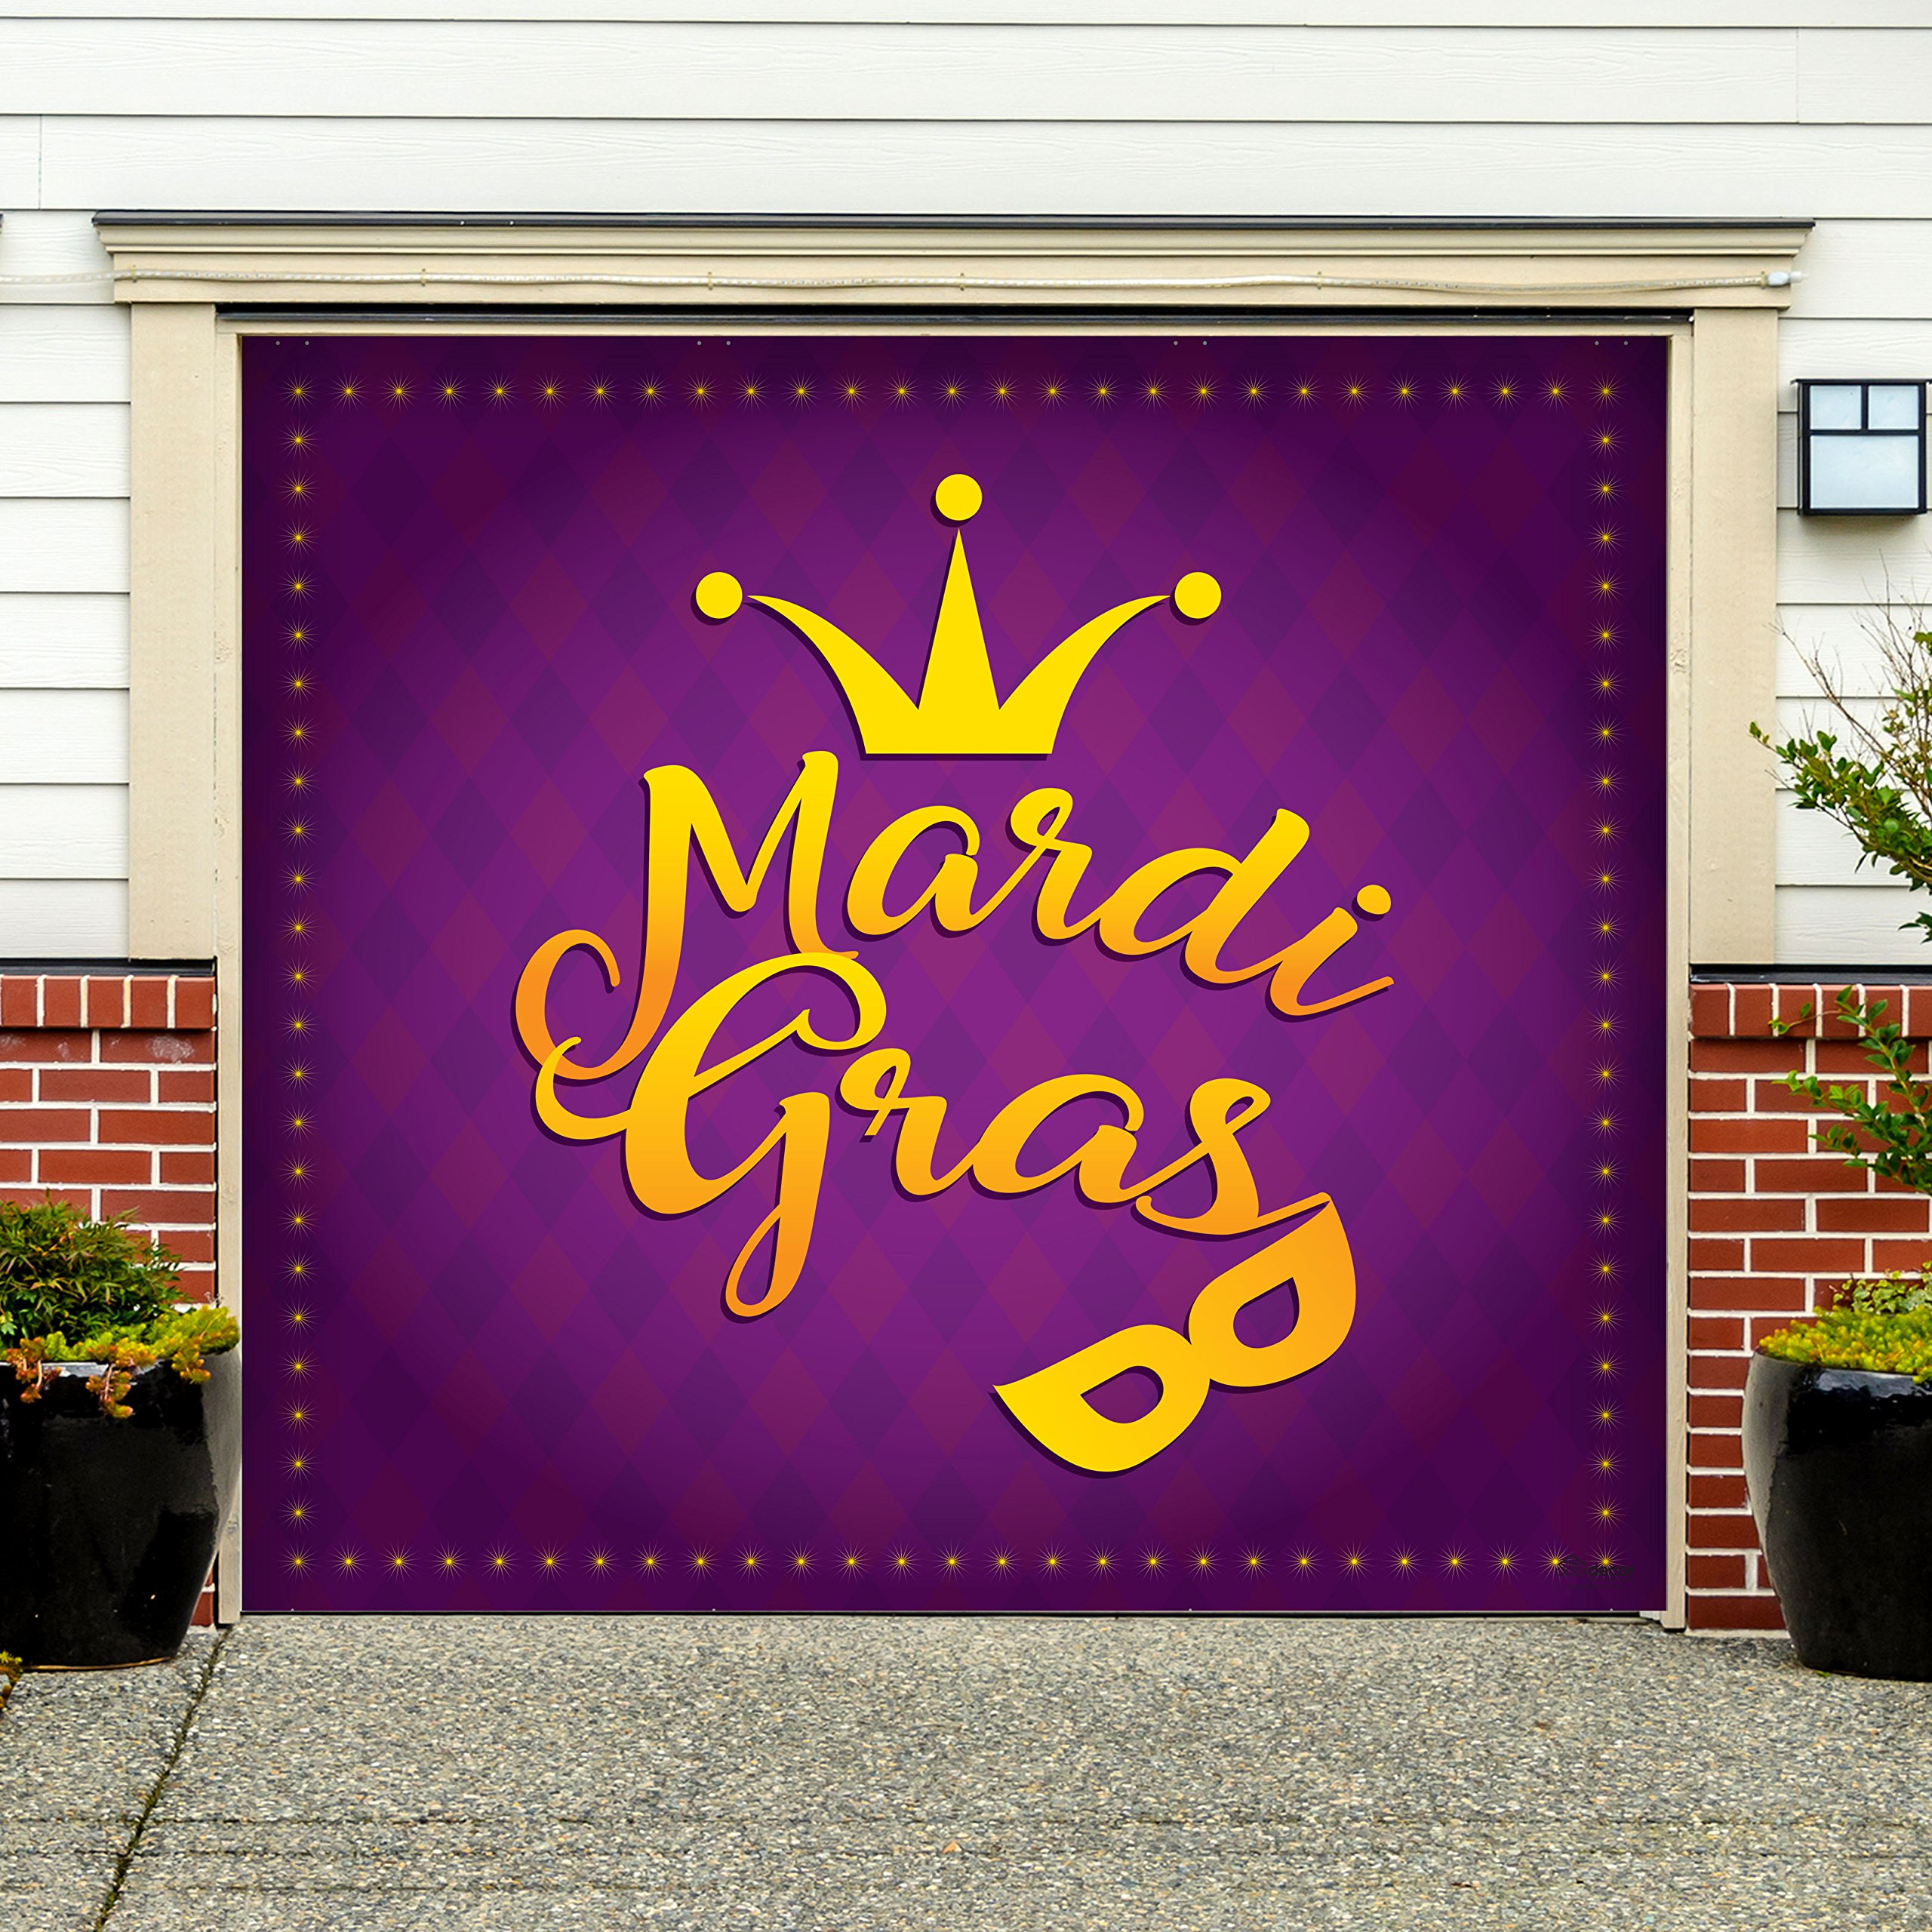 Outdoor Mardi Gras Decorations Garage Door Banner Cover Mural Décoration 7'x8' - Mardi Gras Crown and Mask - ''The Original Mardi Gras Supplies Holiday Garage Door Banner Decor''